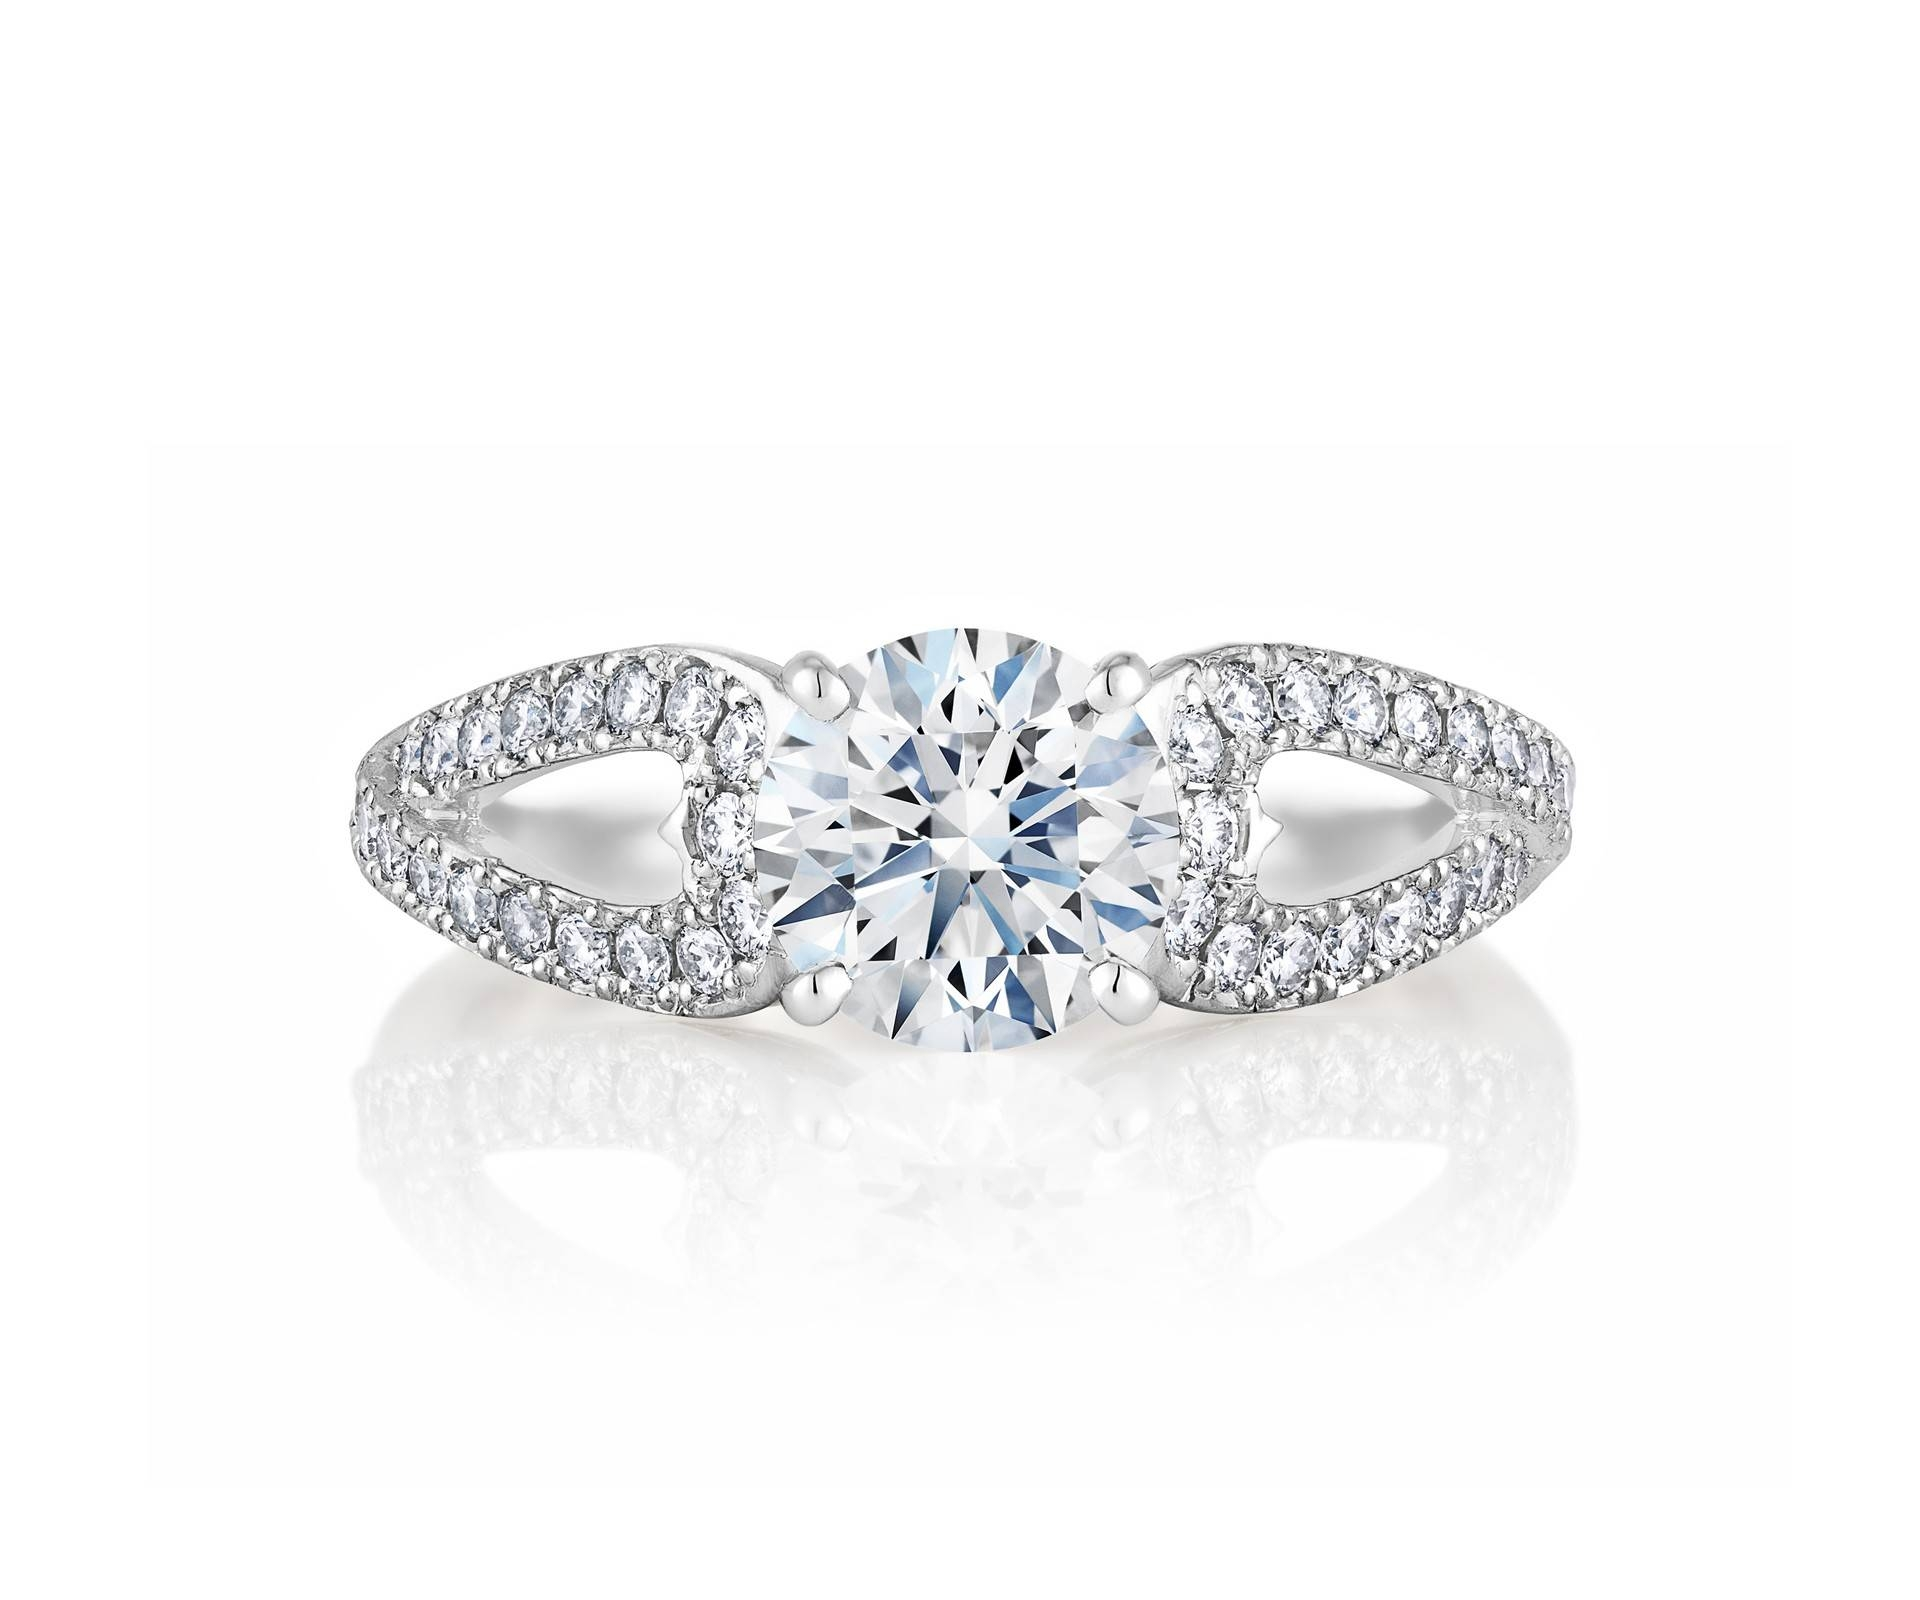 Diamond Engagement Rings & Promise Rings | De Beers Regarding Infinity Style Engagement Rings (View 3 of 15)